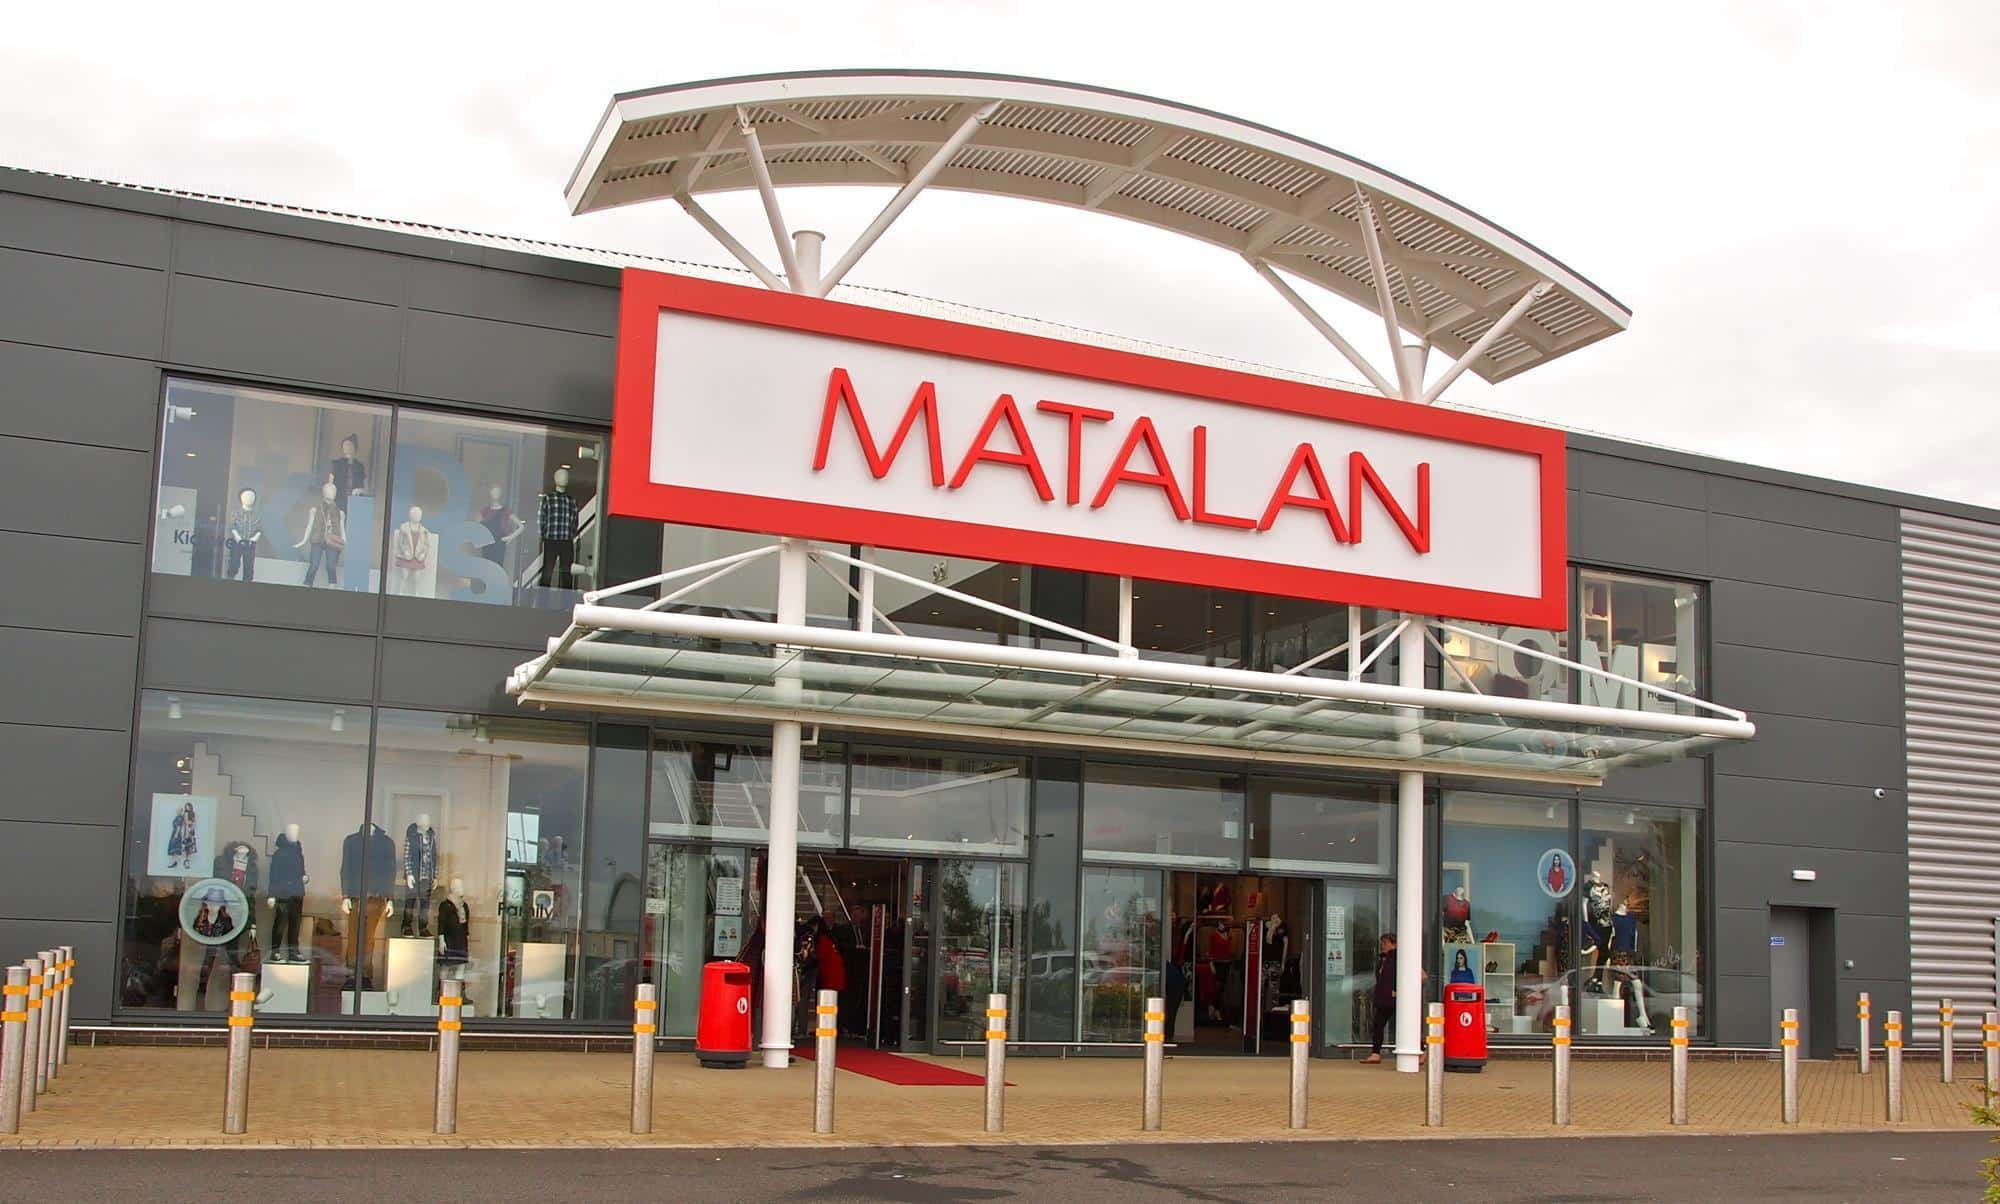 About matalan-survey.co uk